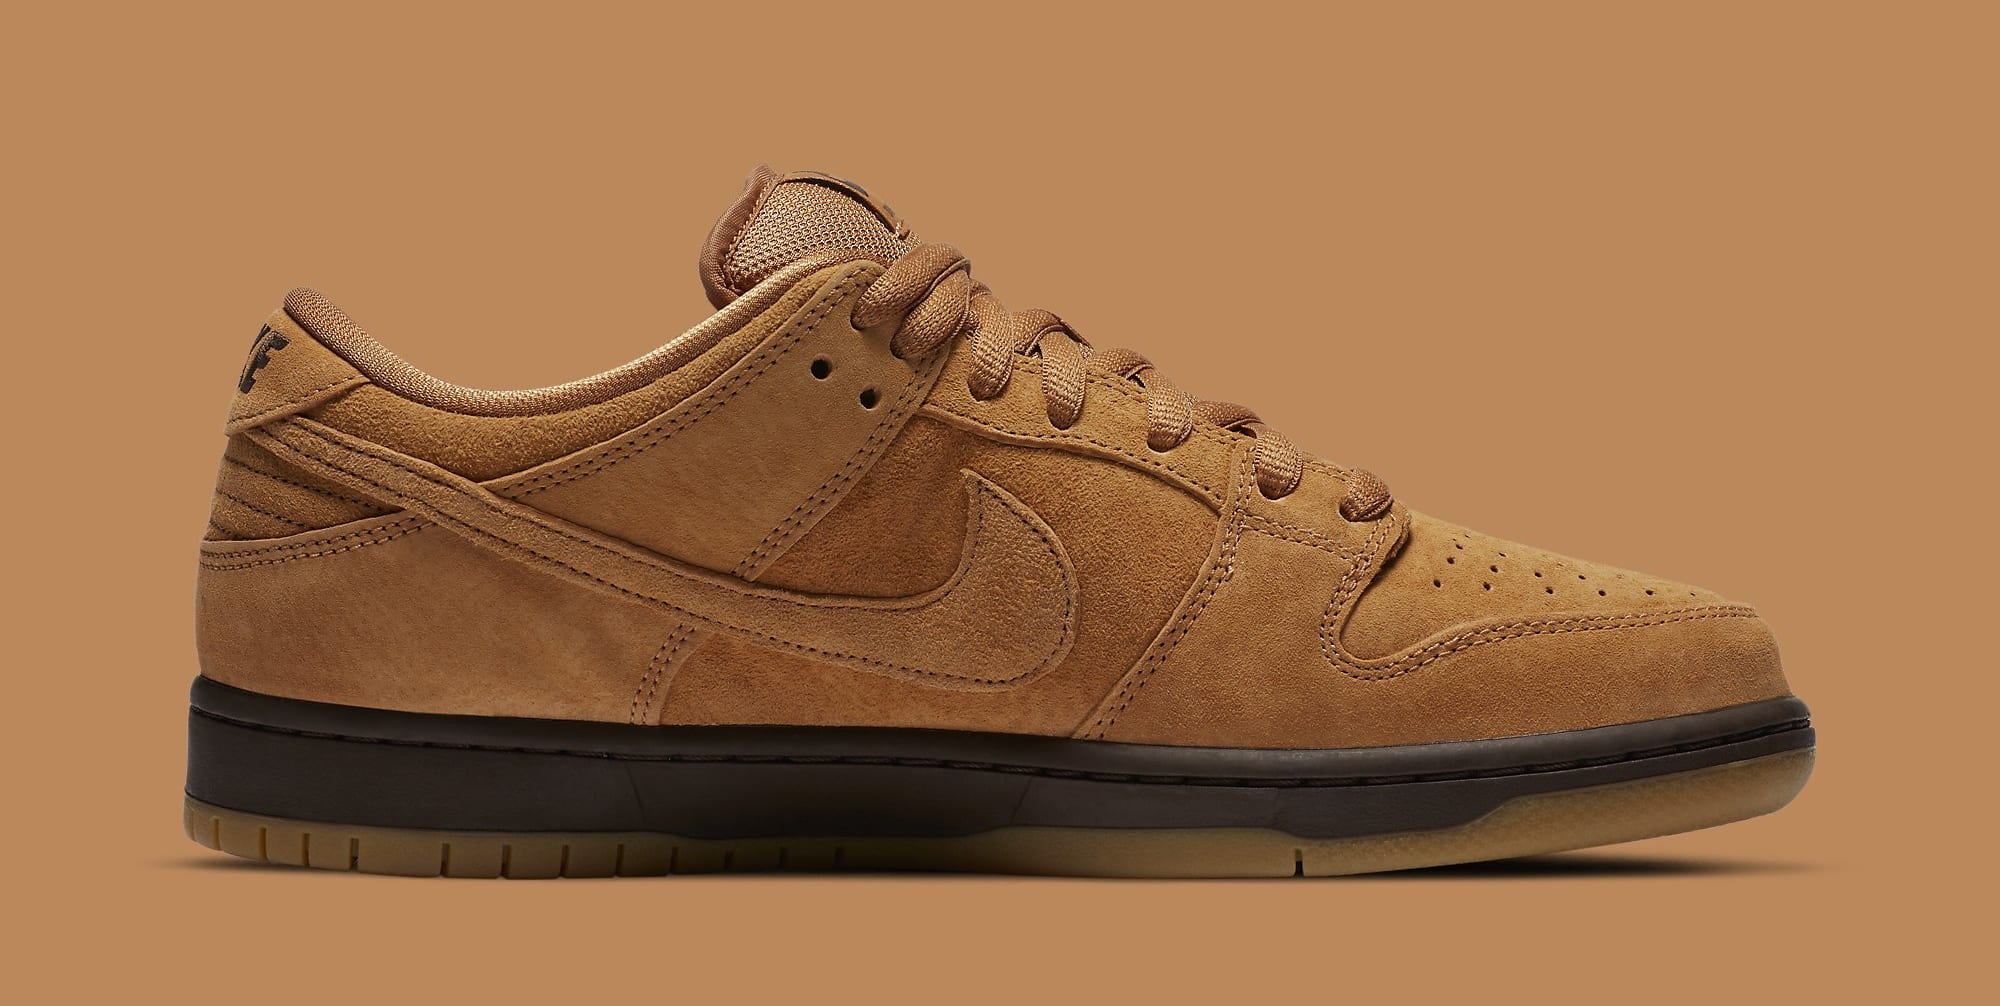 Nike SB Dunk Low 'Wheat Mocha' BQ6817-204 Medial